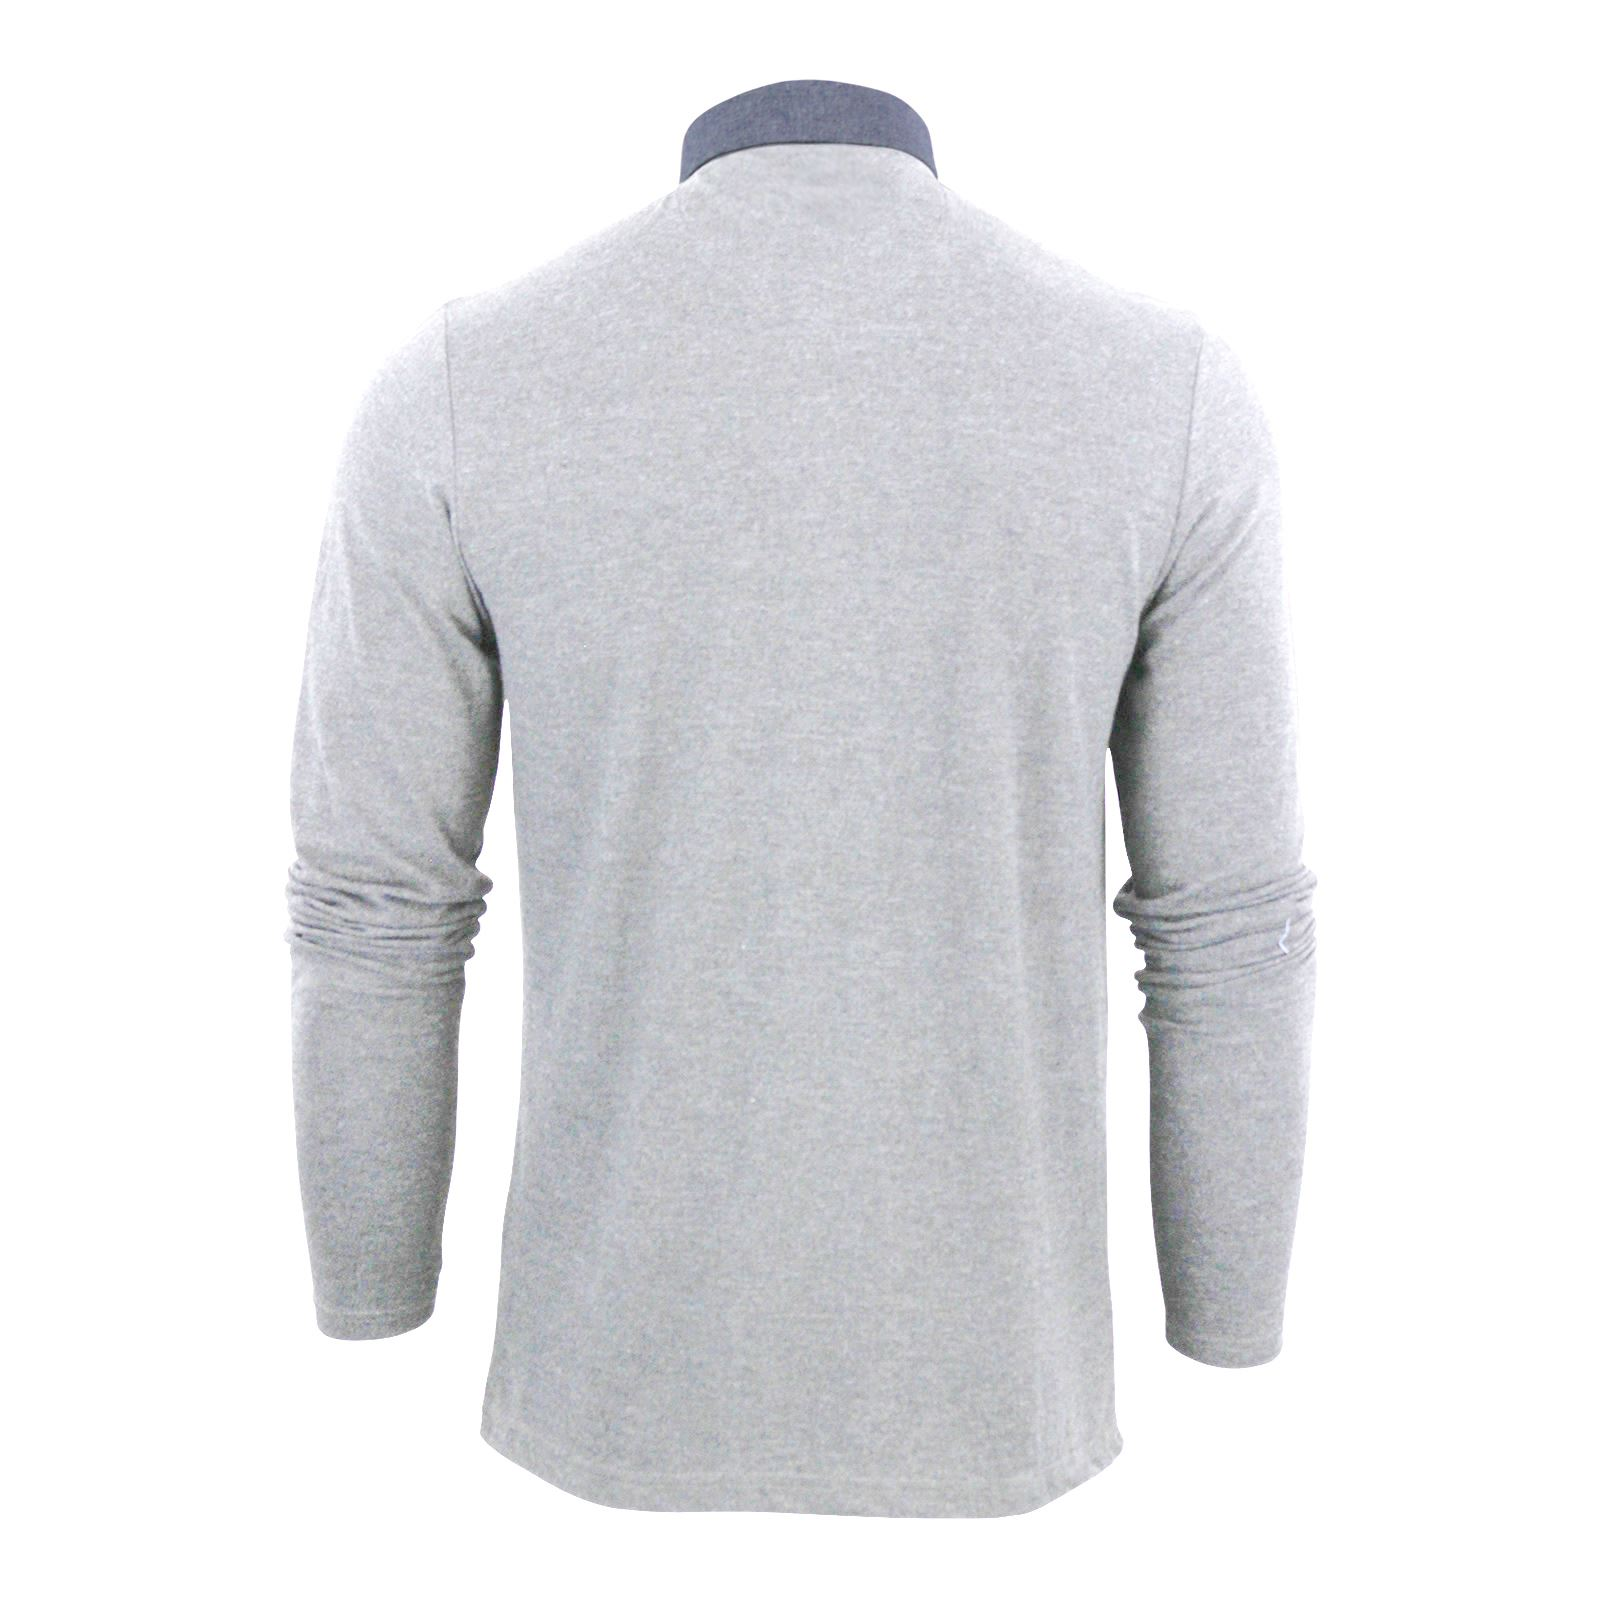 Mens-Polo-Shirt-Brave-Soul-Long-Sleeve-Collared-Top-In-Various-Styles thumbnail 39